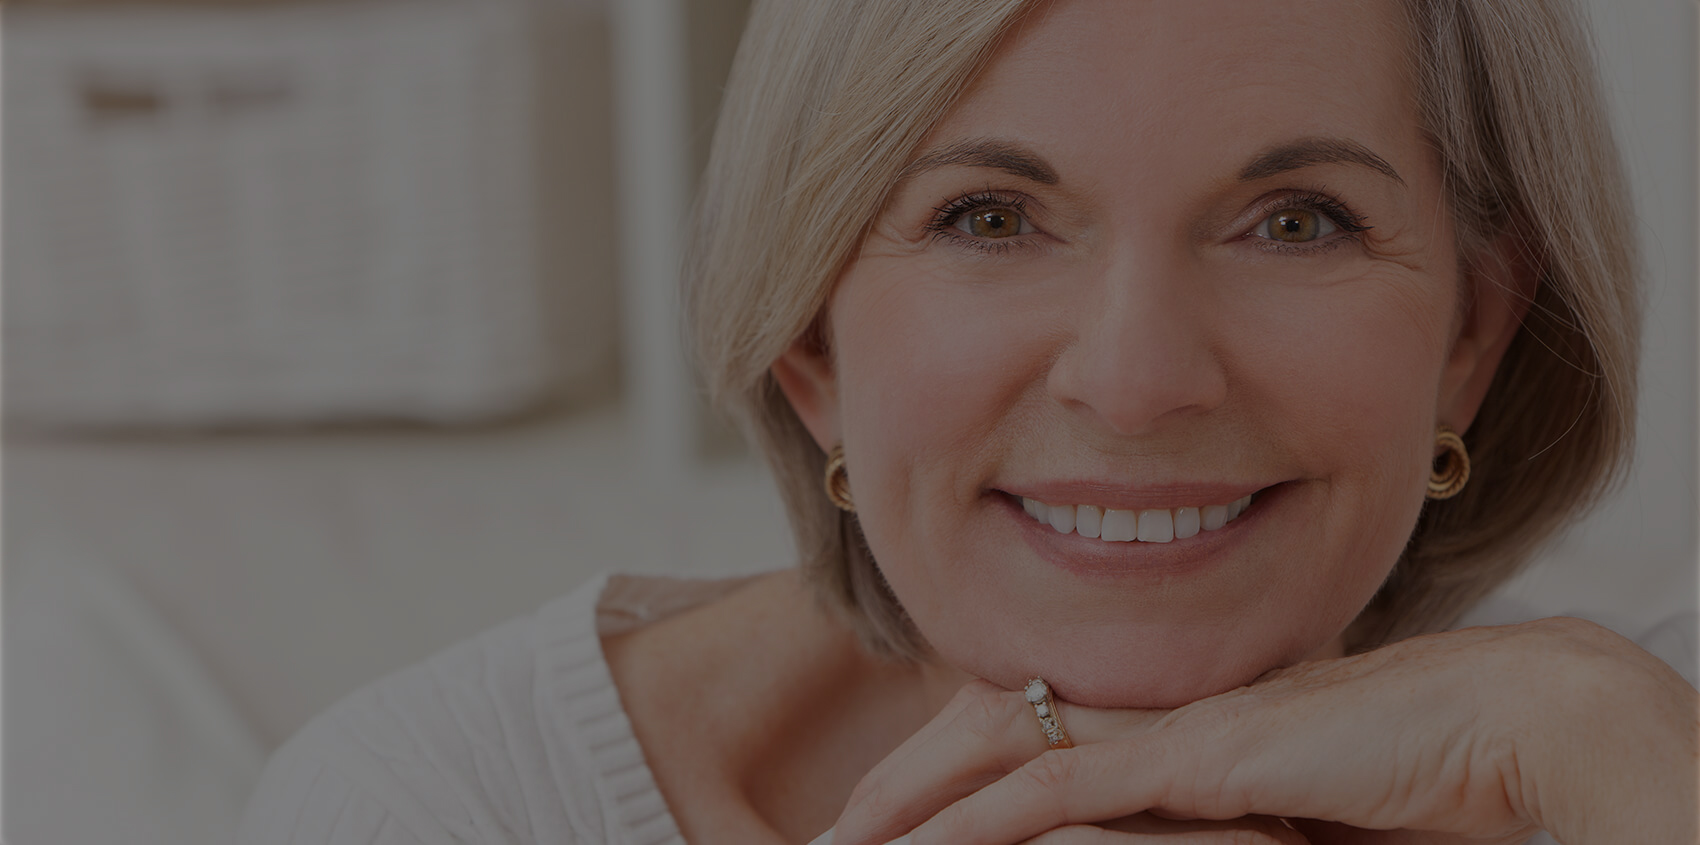 Prevent cavities with dental sealants for adults in Salt Lake City, UT